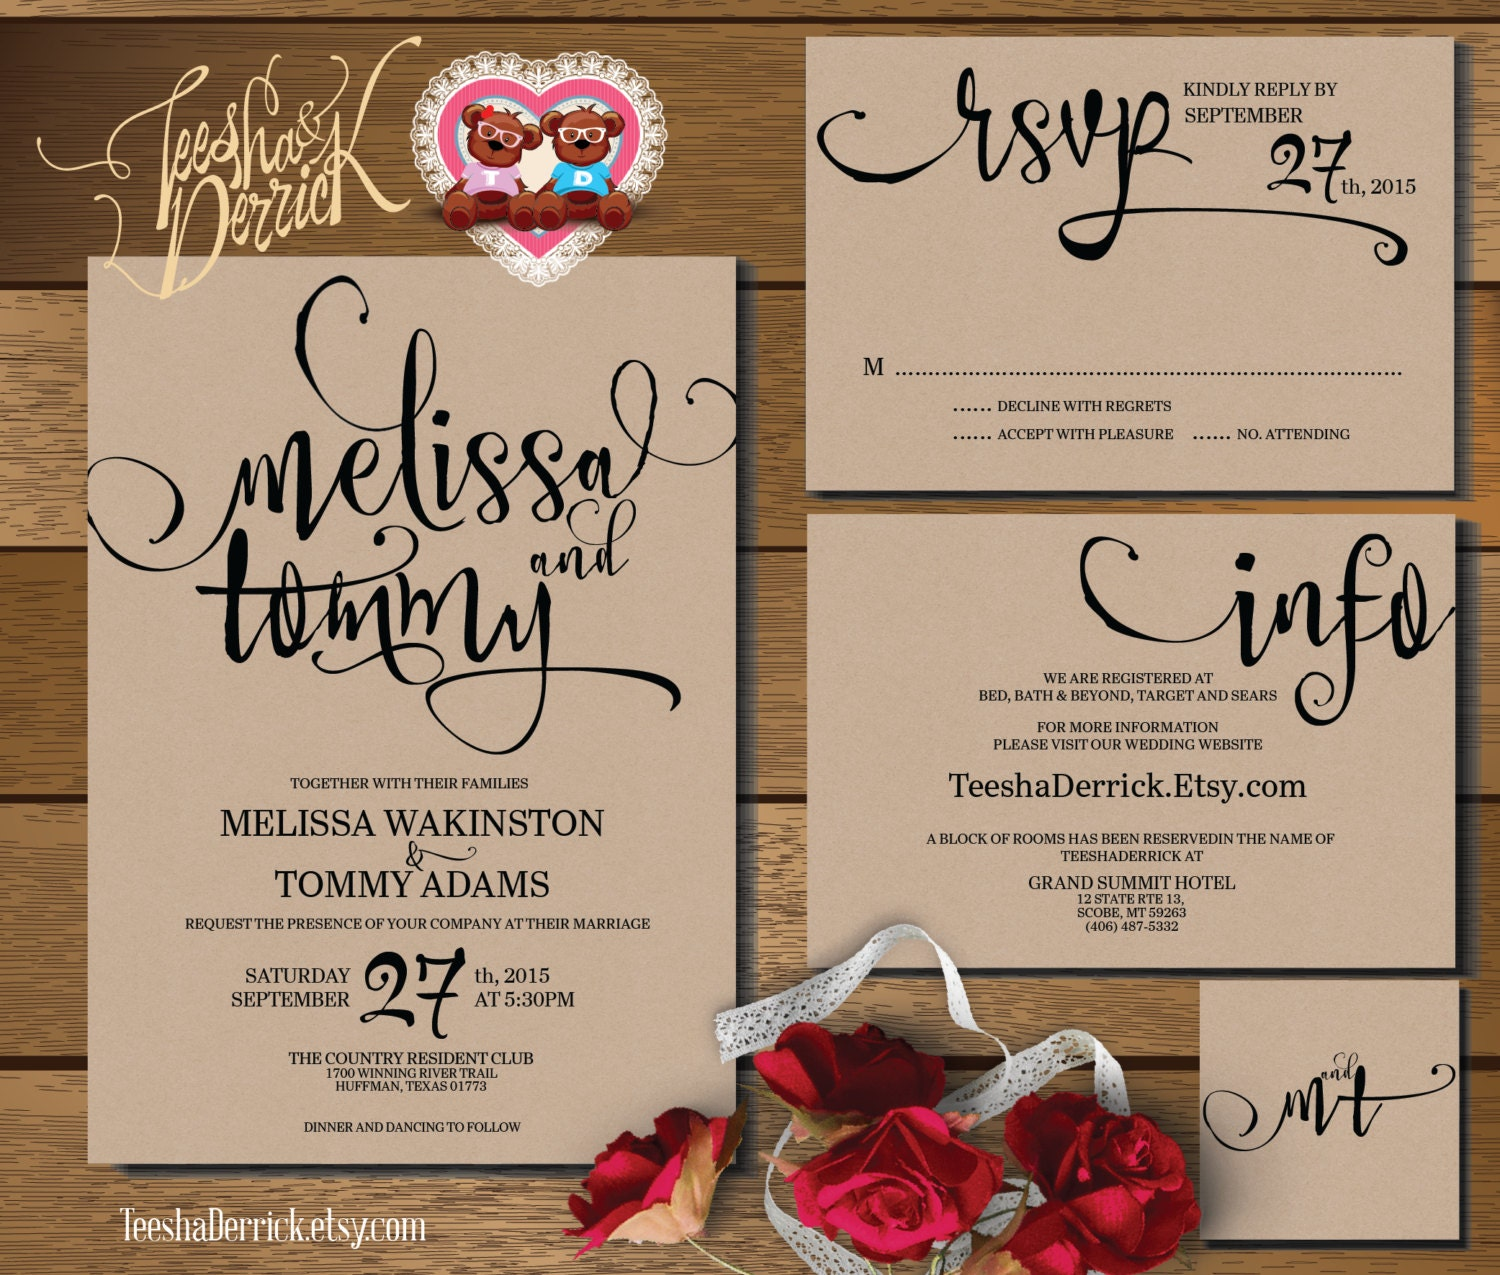 Printable Wedding Invitations: Printable Wedding Invitation Suite W0346 Consists Of